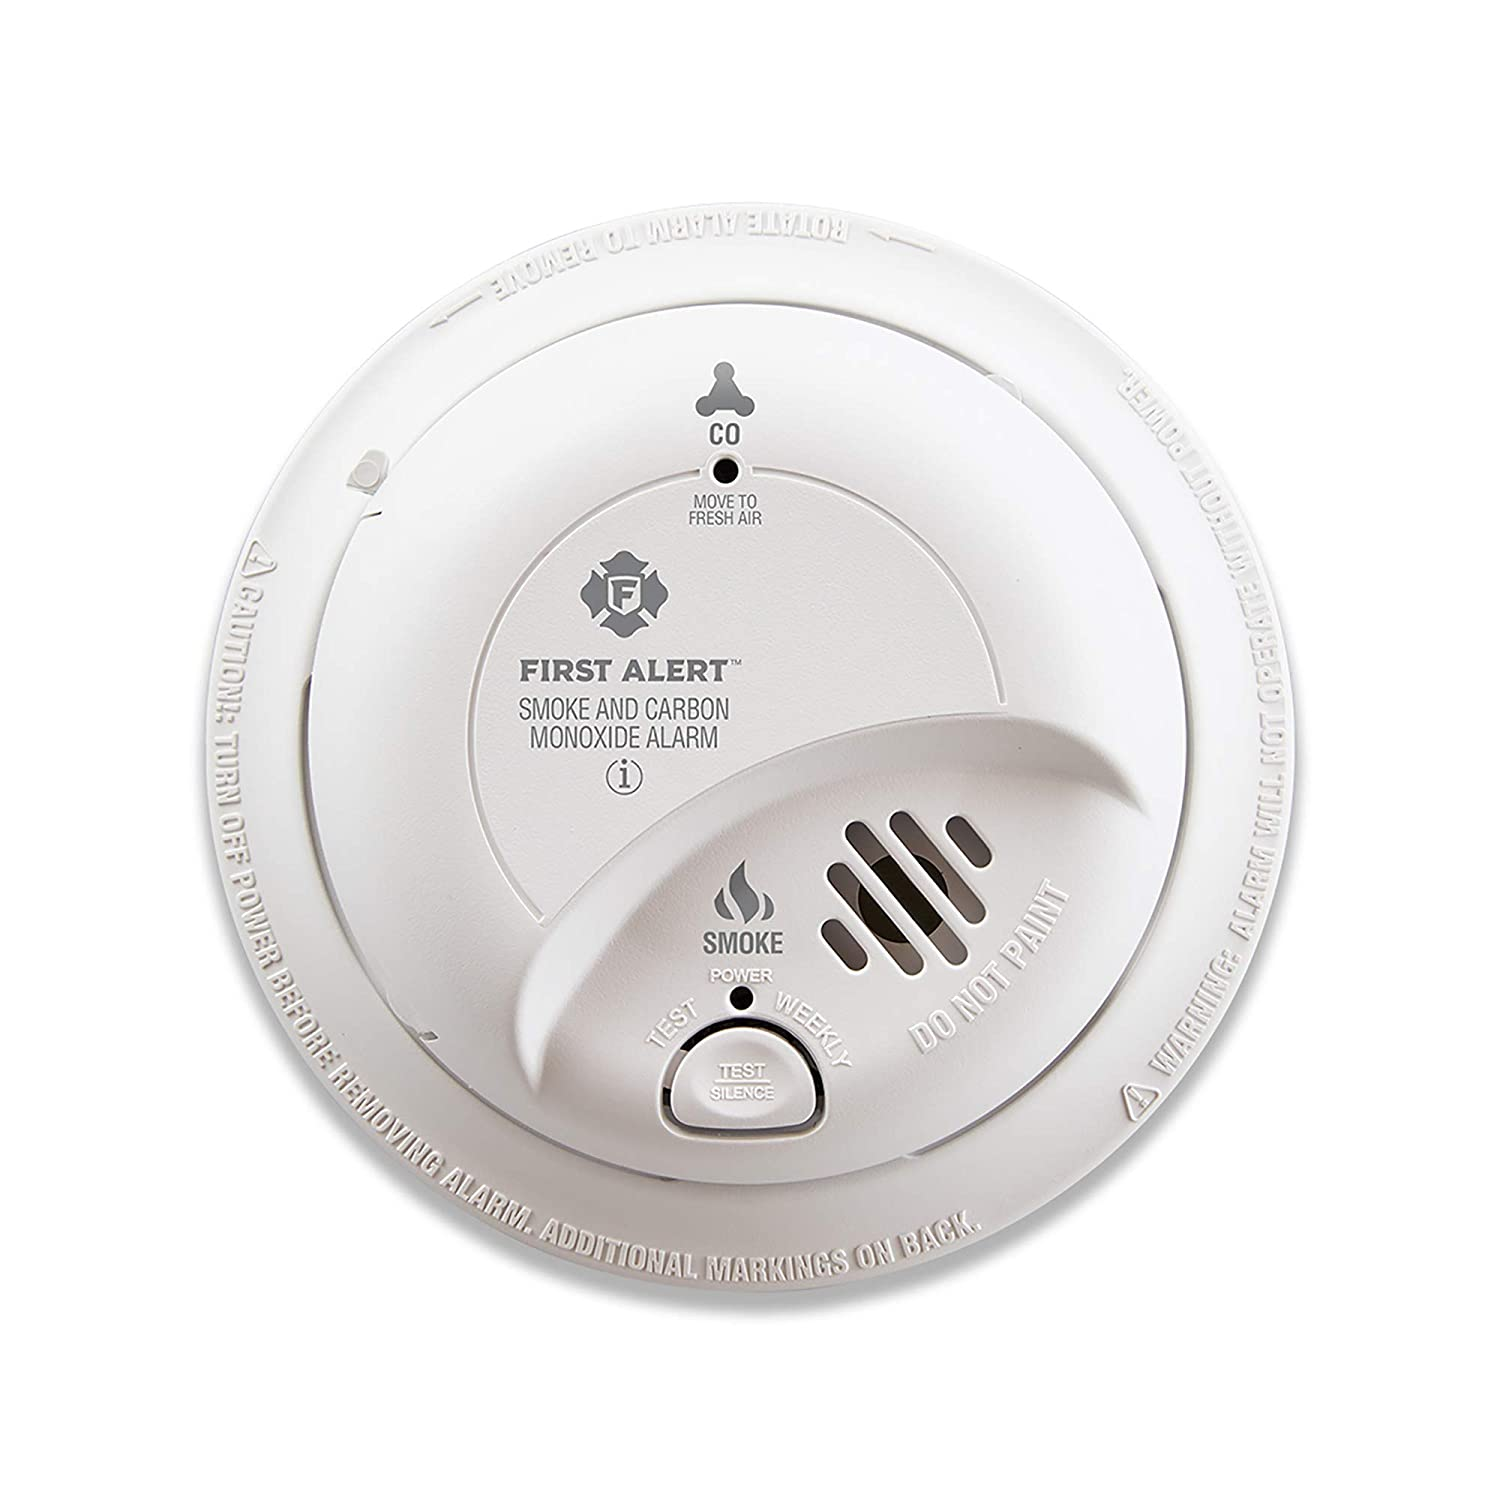 Funky Hard Wired Smoke Detectors Beeping Image - The Wire - magnox.info